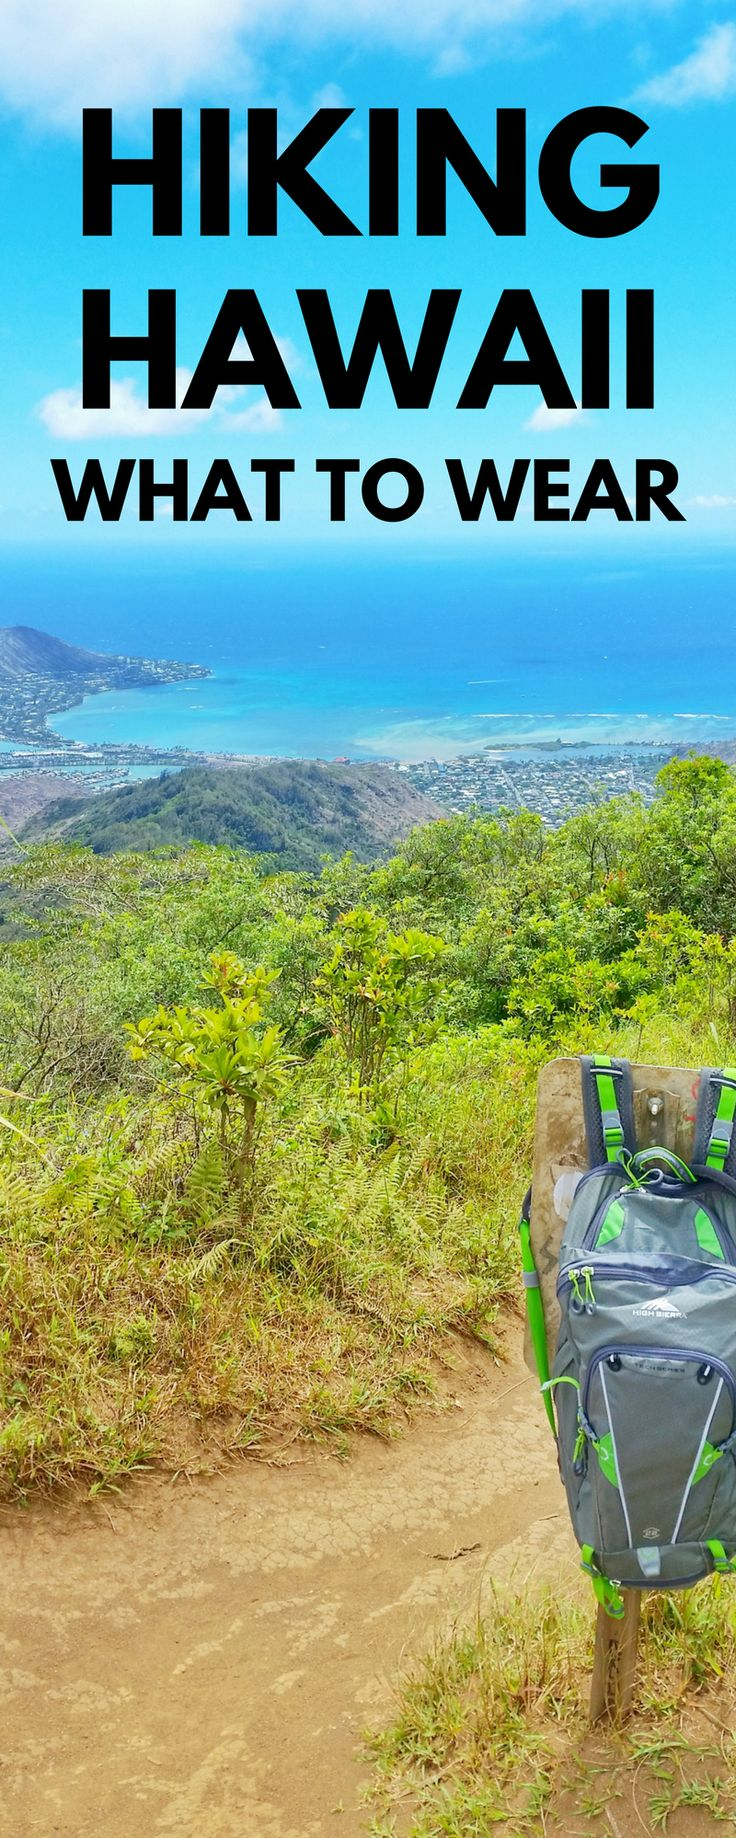 Hiking in Hawaii. Tips for beginners - what to wear hiking! Hiking gear list for Hawaii, outdoor travel bucket list destinations, day hikes. Hiking mountains or easy trails, be prepared! Essentials when it comes to hiking gear. Things to pack for Hawaii vacation and put on the packing list! Hiking is cheap or free, so it's a perfect budget activity of things to do when you travel, and then end your day at beach, for Oahu, Kauai, Maui, or Big Island! #hawaii #oahu #kauai #maui #bigisland